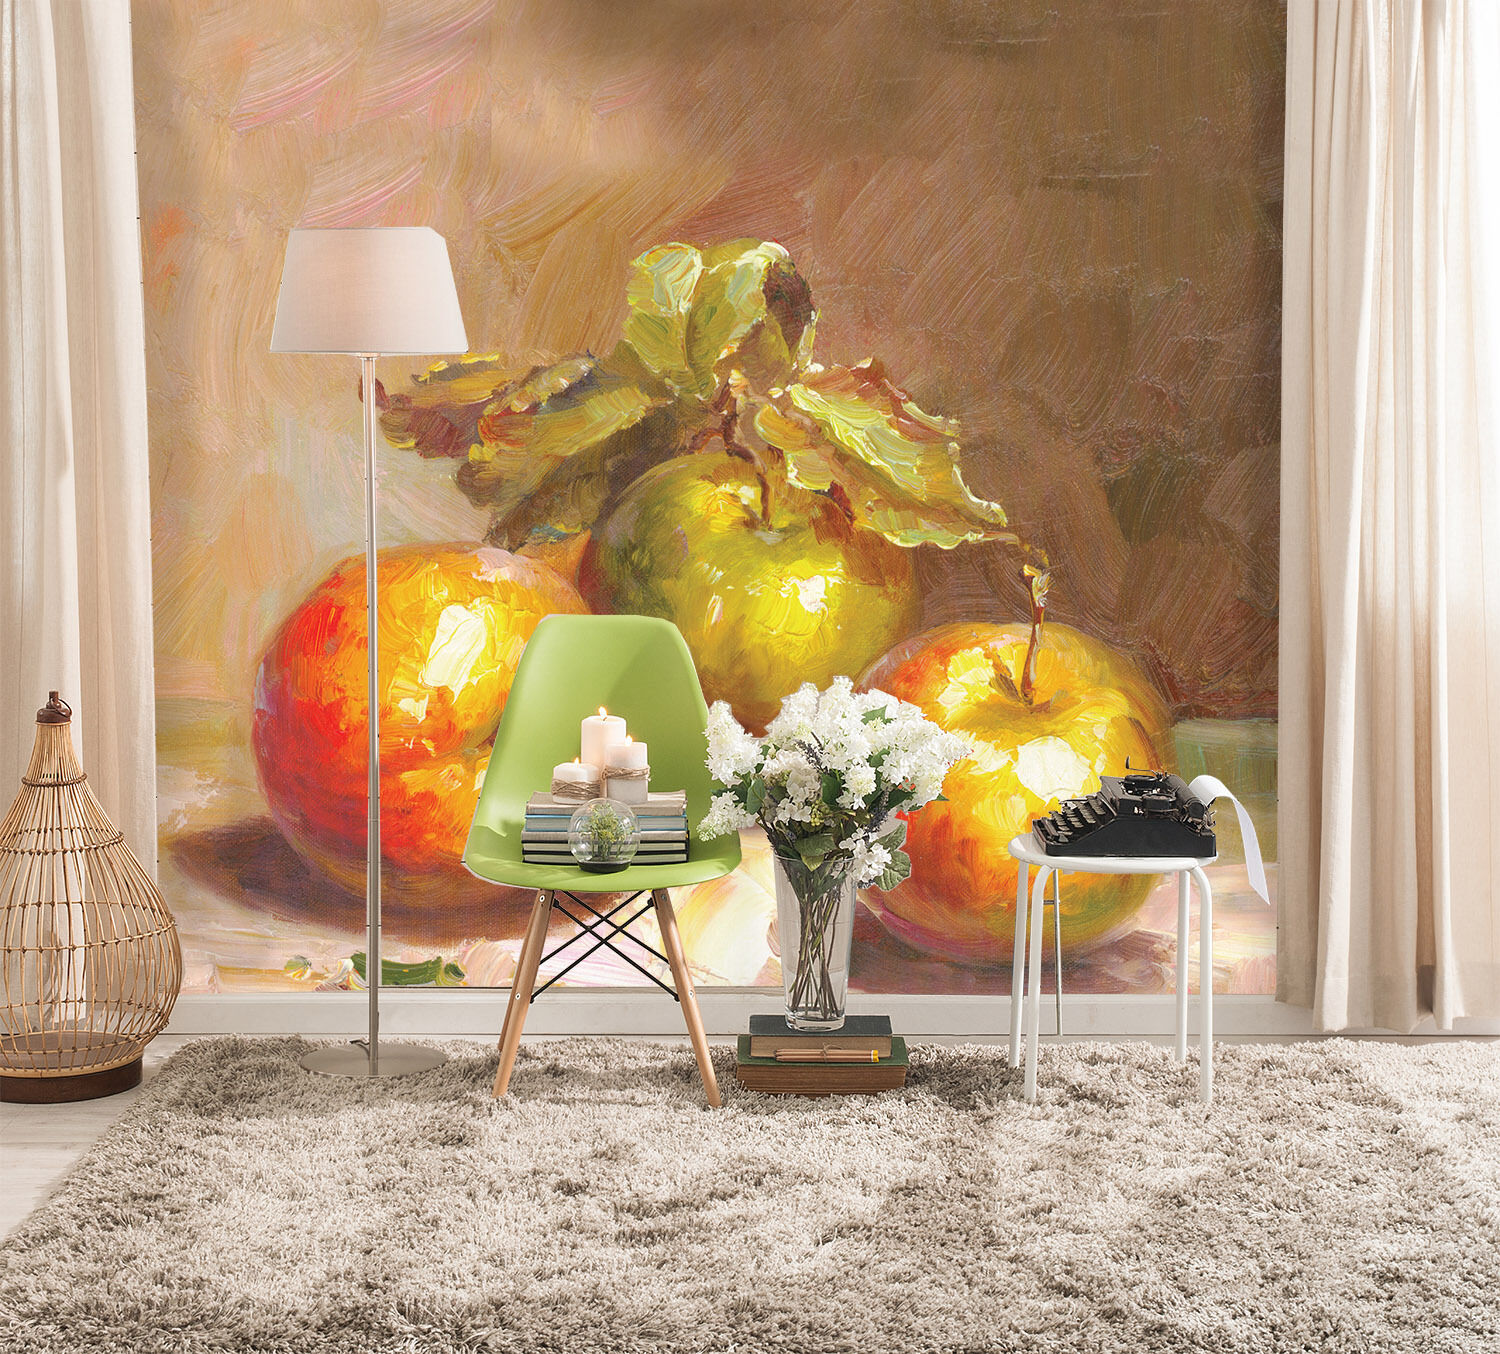 3D Painting Fruits 4023 Wall Paper Wall Print Decal Wall Deco Wall Indoor Murals